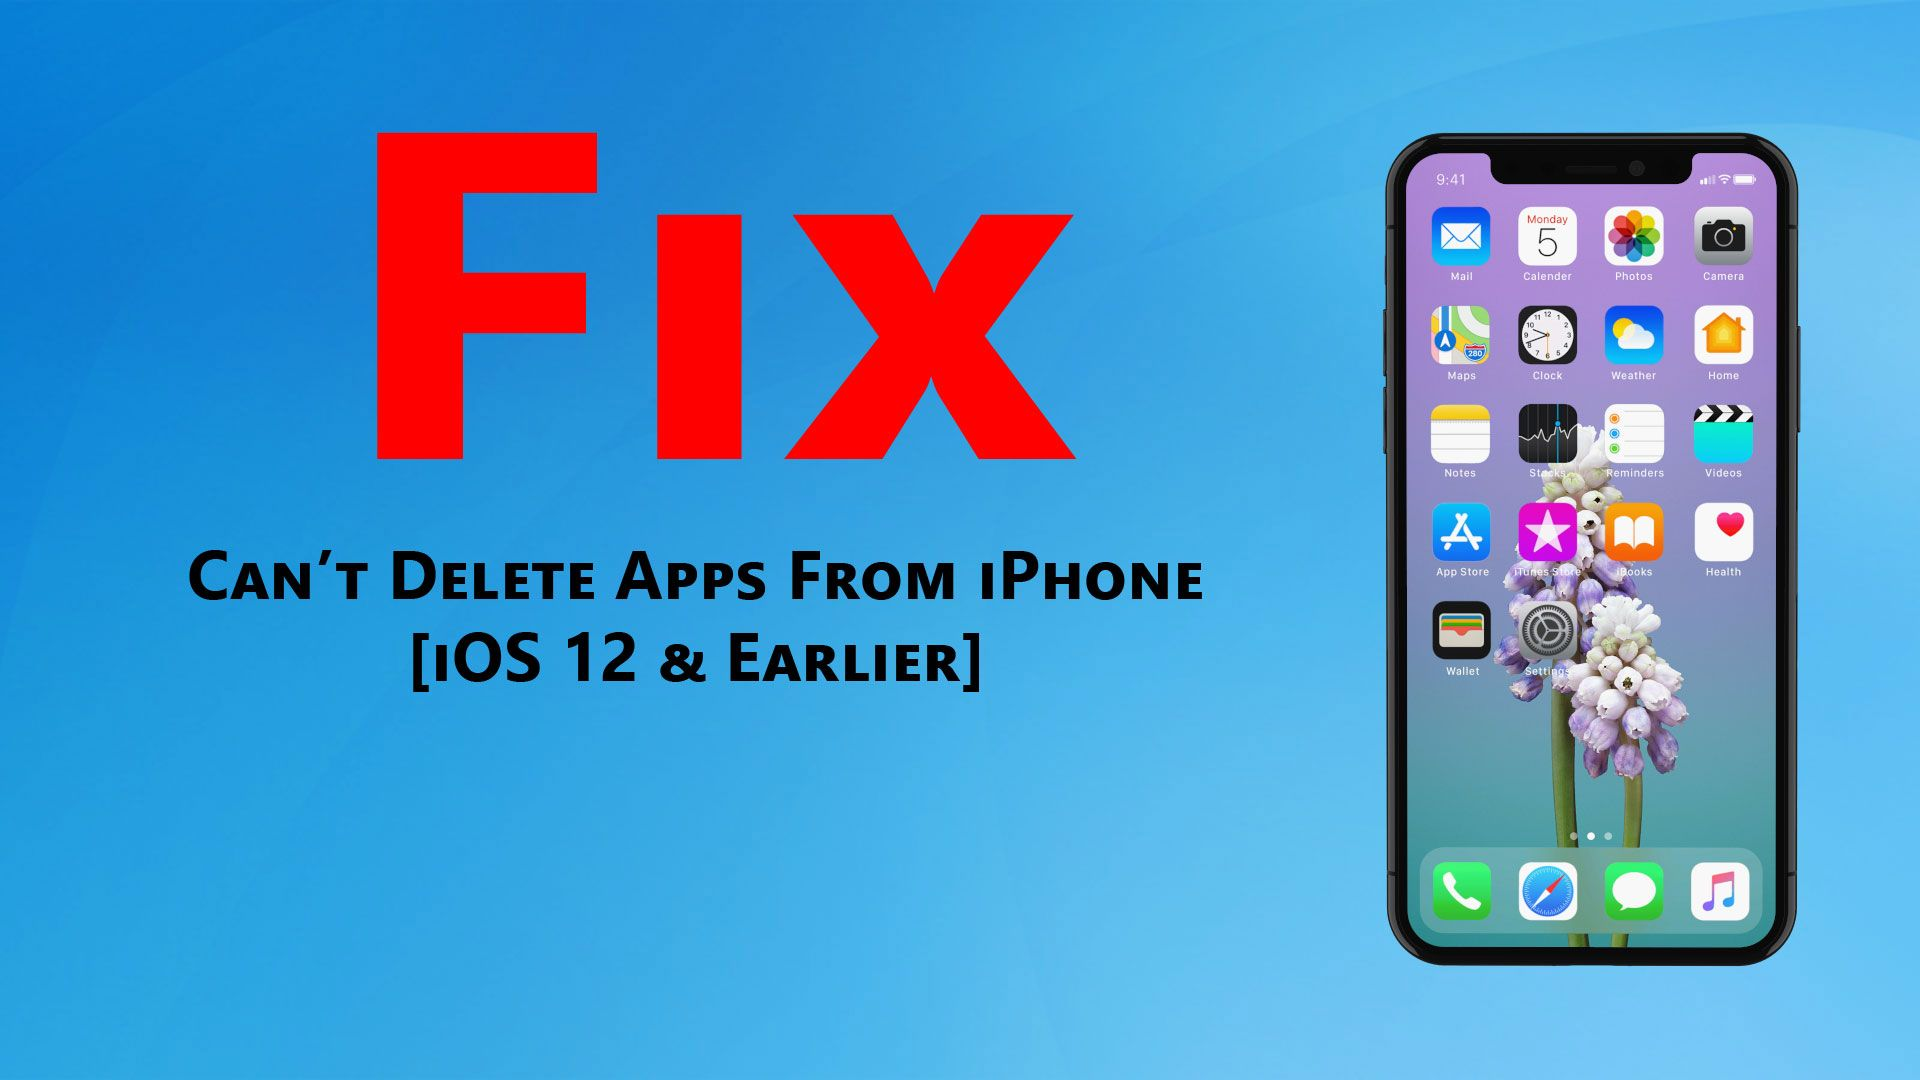 Can't delete apps from iPhone using iOS 12 – Quick way to